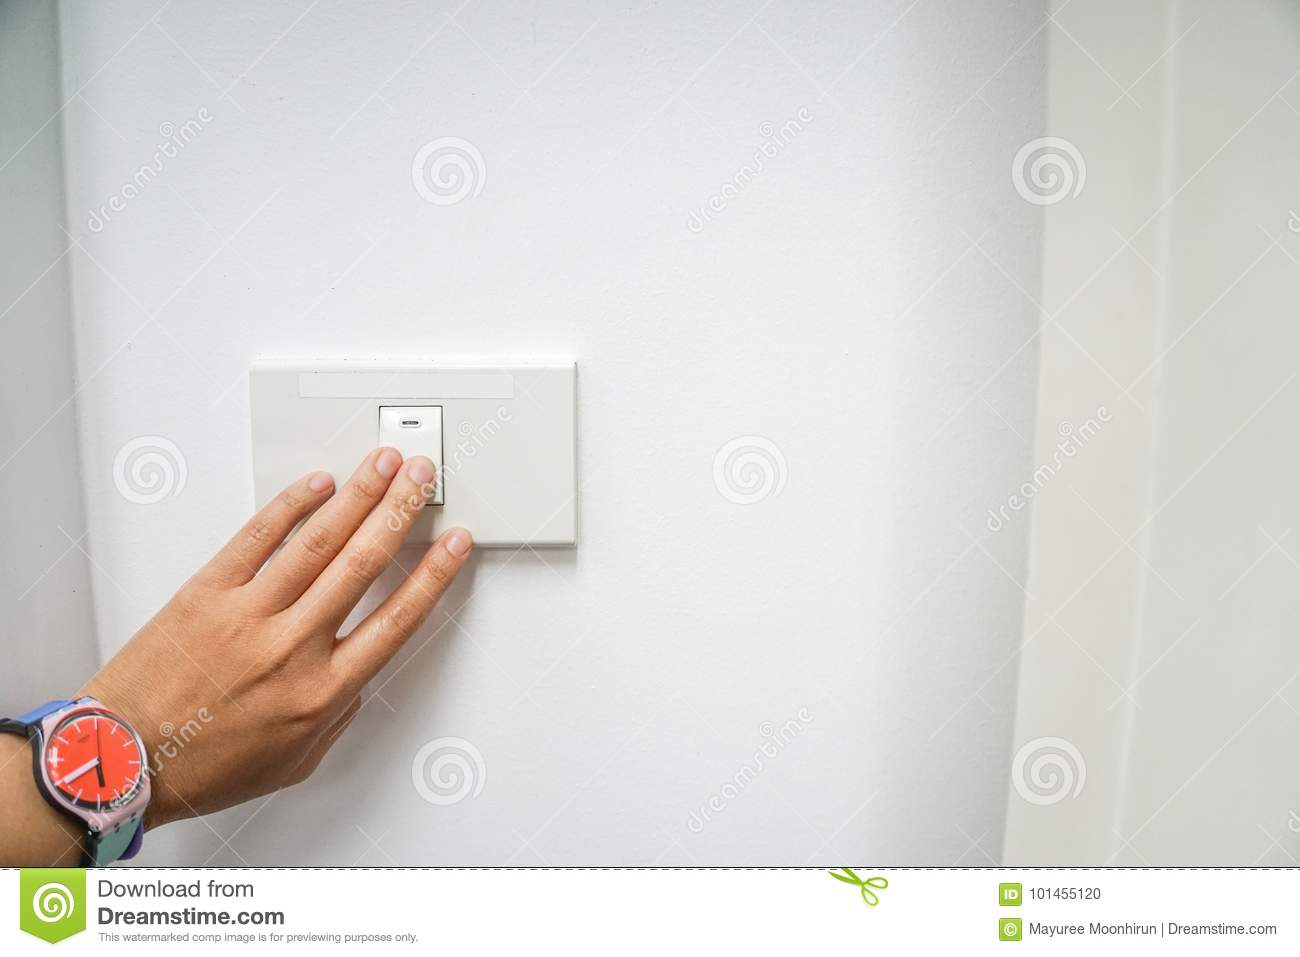 Woman left hand with cute watch turn off the office light switch for energy savings